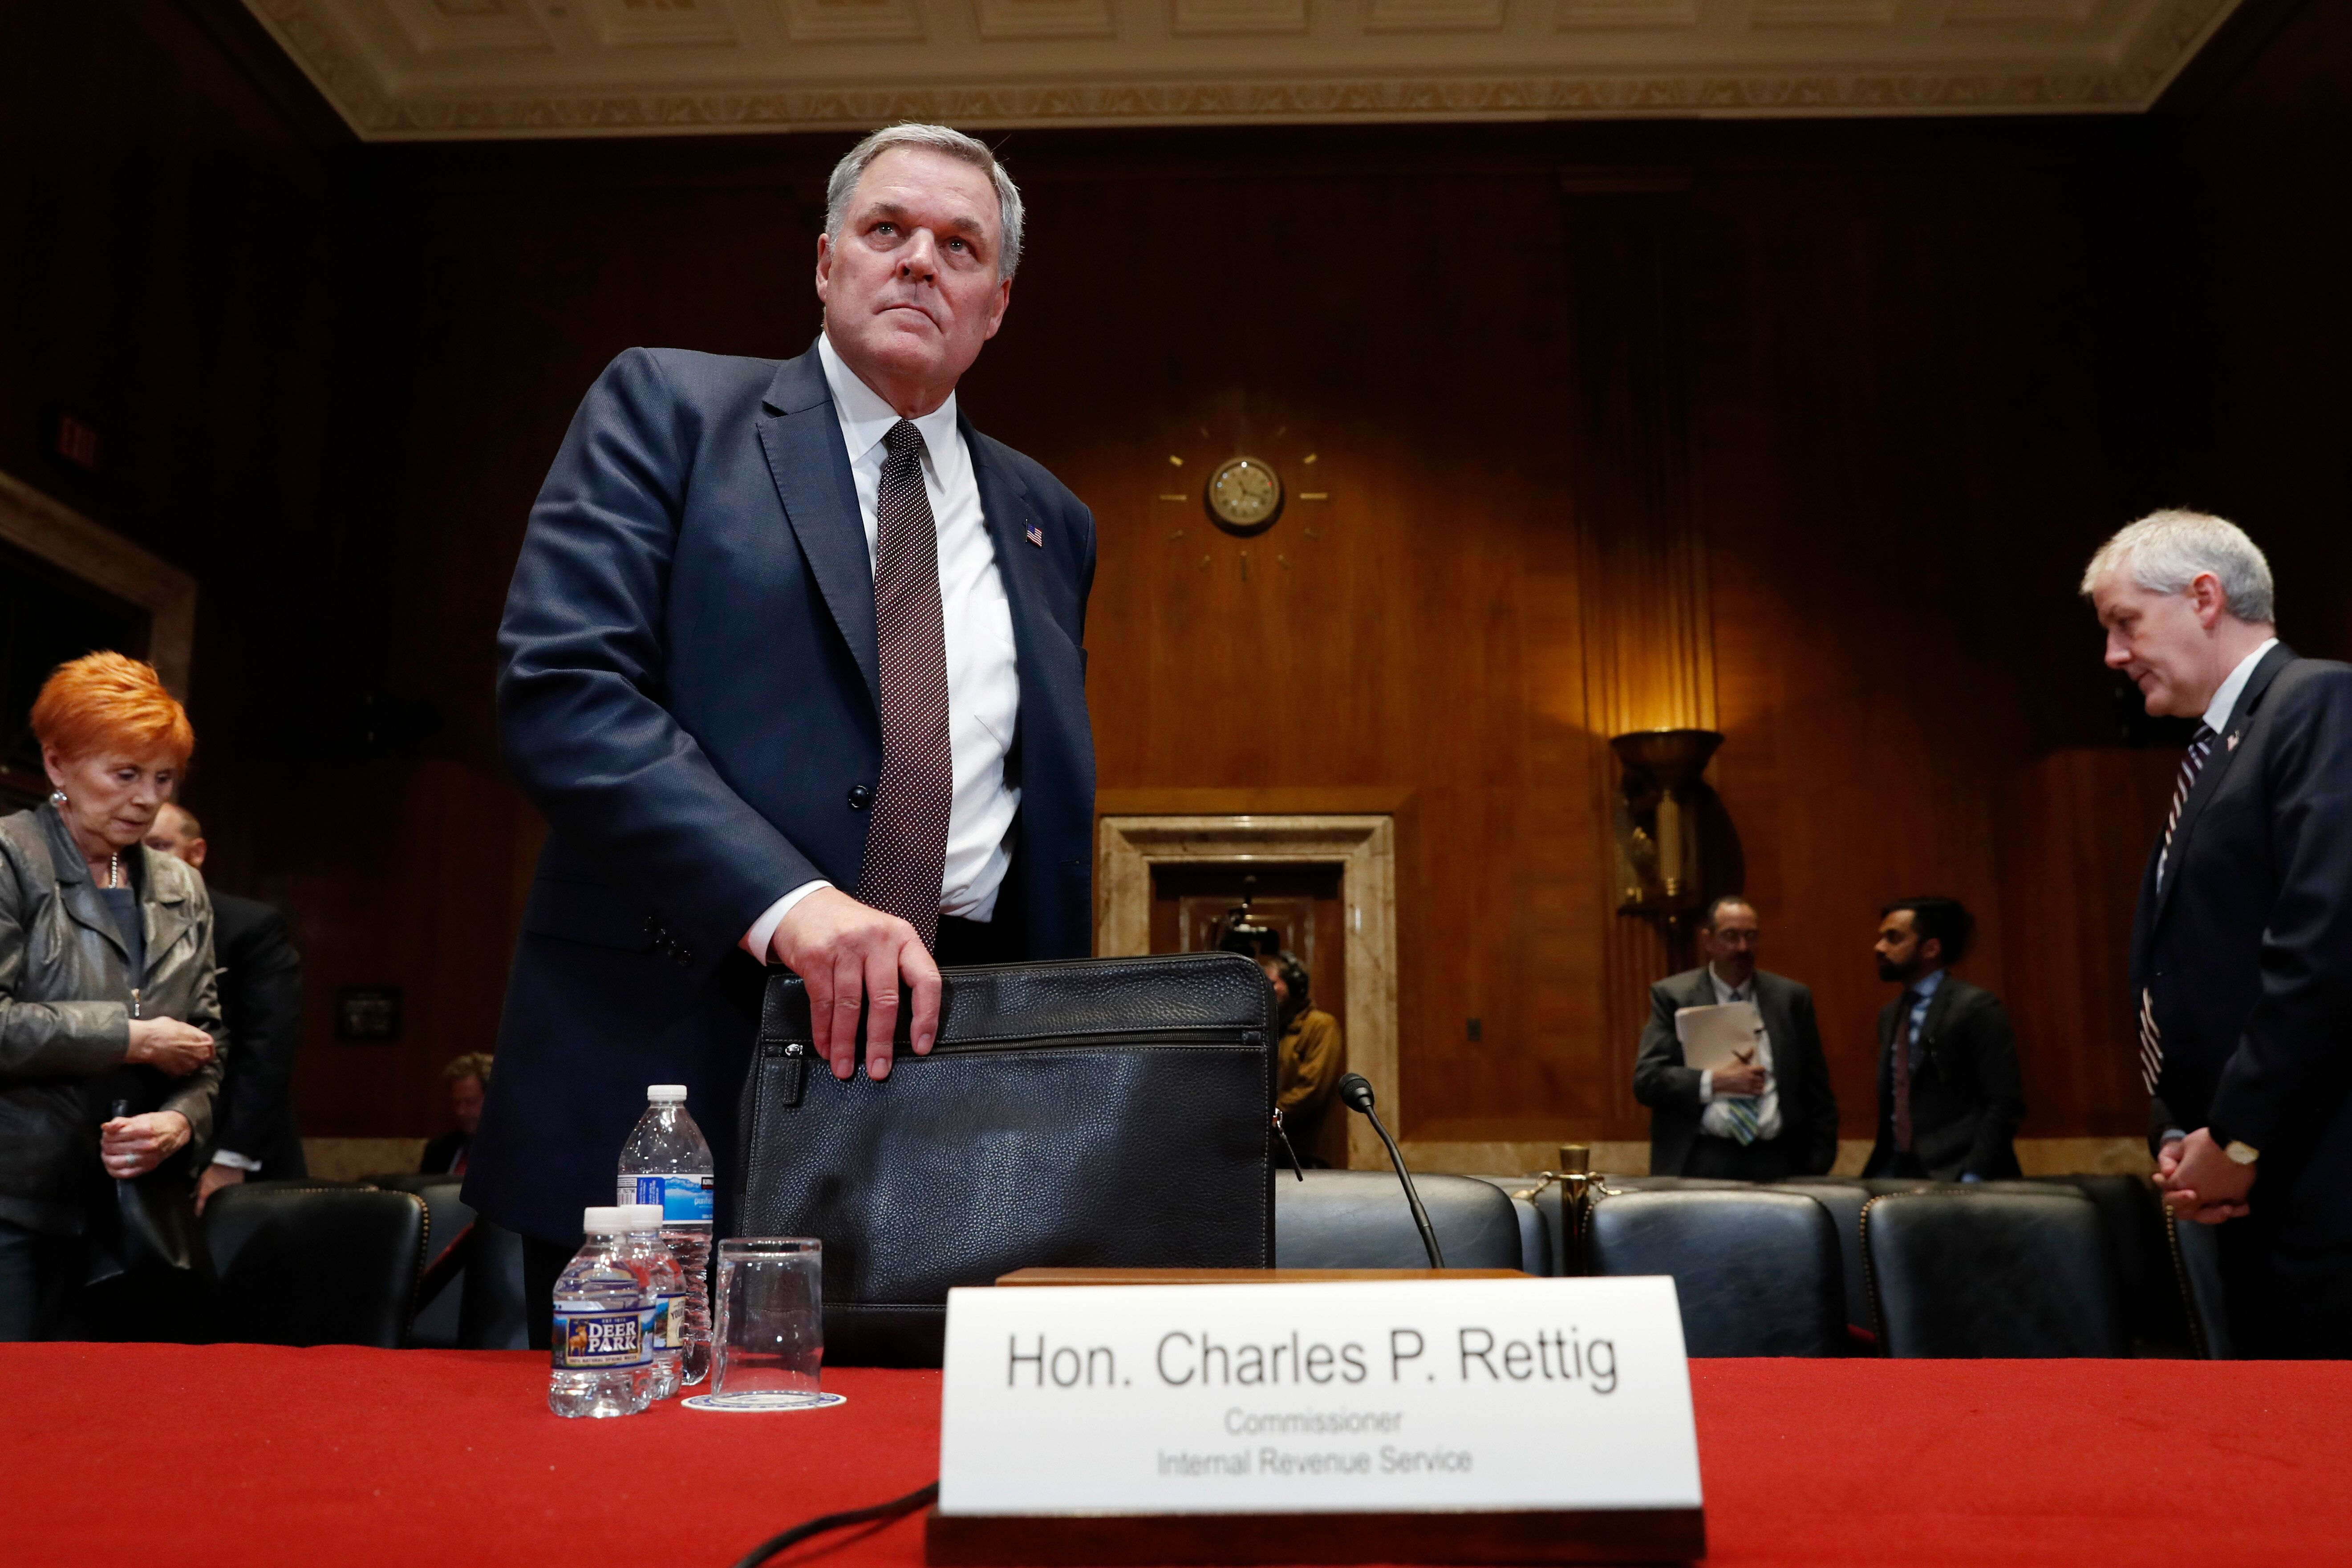 IRS Commissioner Charles Rettig arrives to testify about the budget during a Financial Services and General Government subcommittee hearing, Wednesday May 15, 2019, on Capitol Hill in Washington. (AP Photo/Jacquelyn Martin)